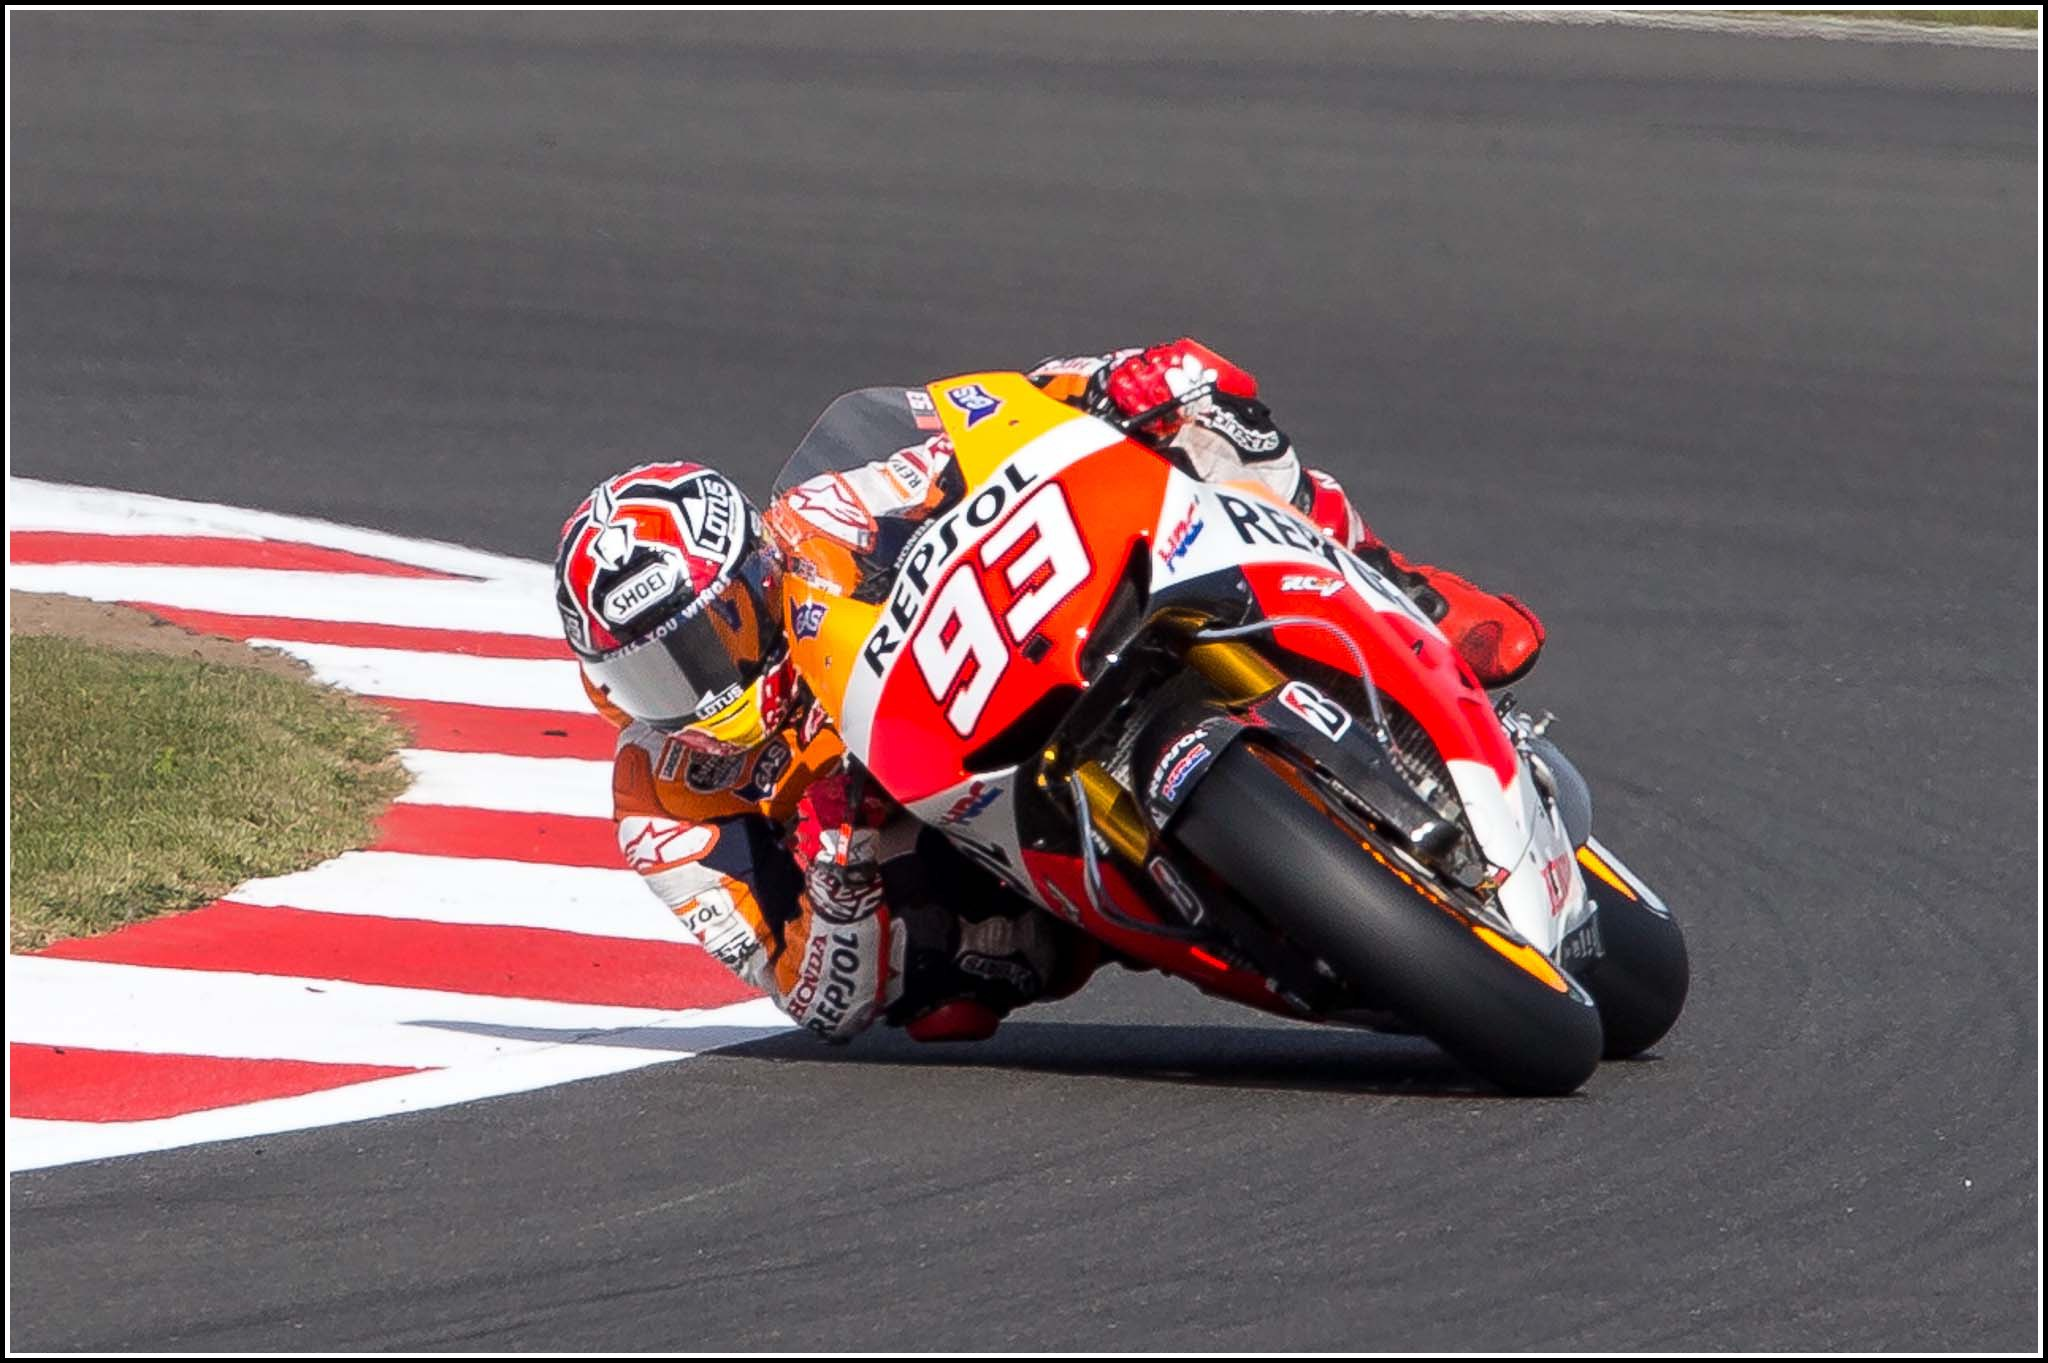 2016 MotoGP Calendar | Motorsports Travel Packages by MOTO